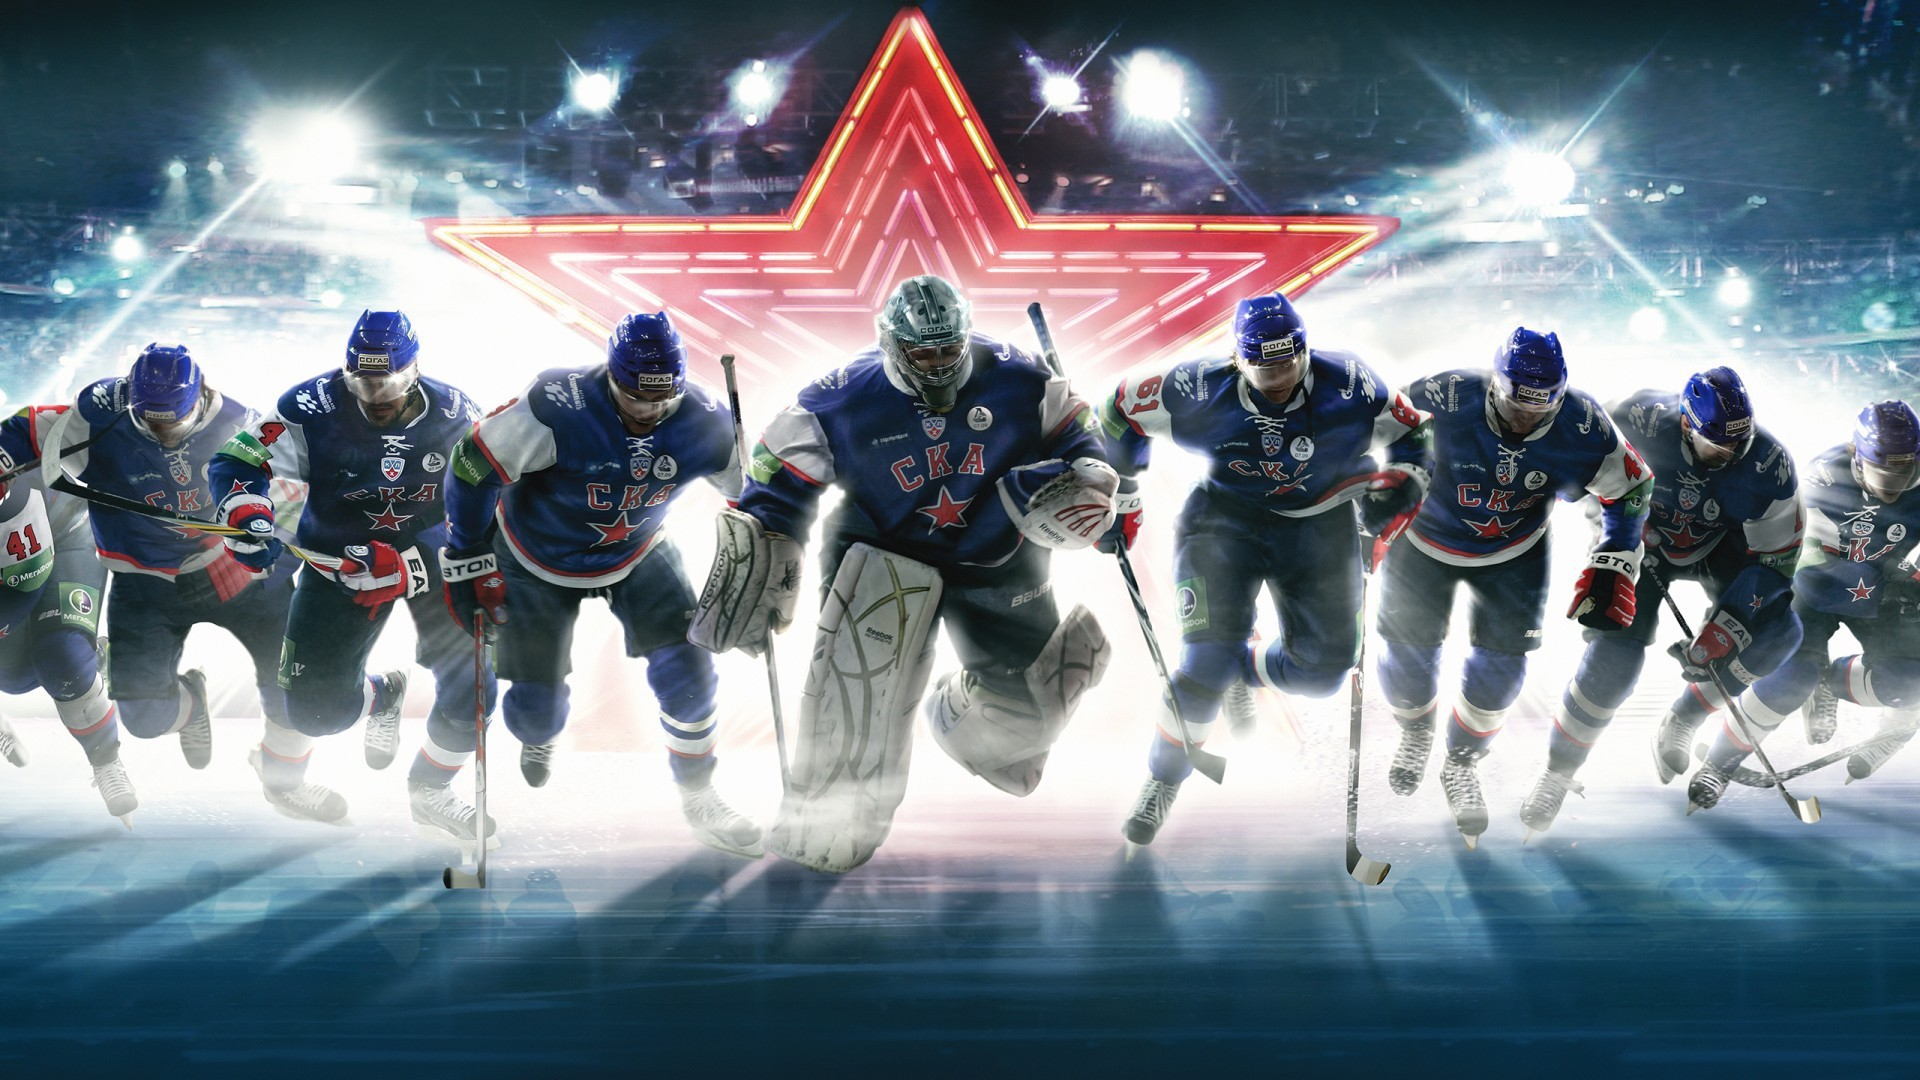 Hockey team wallpapers and images – wallpapers, pictures, photos